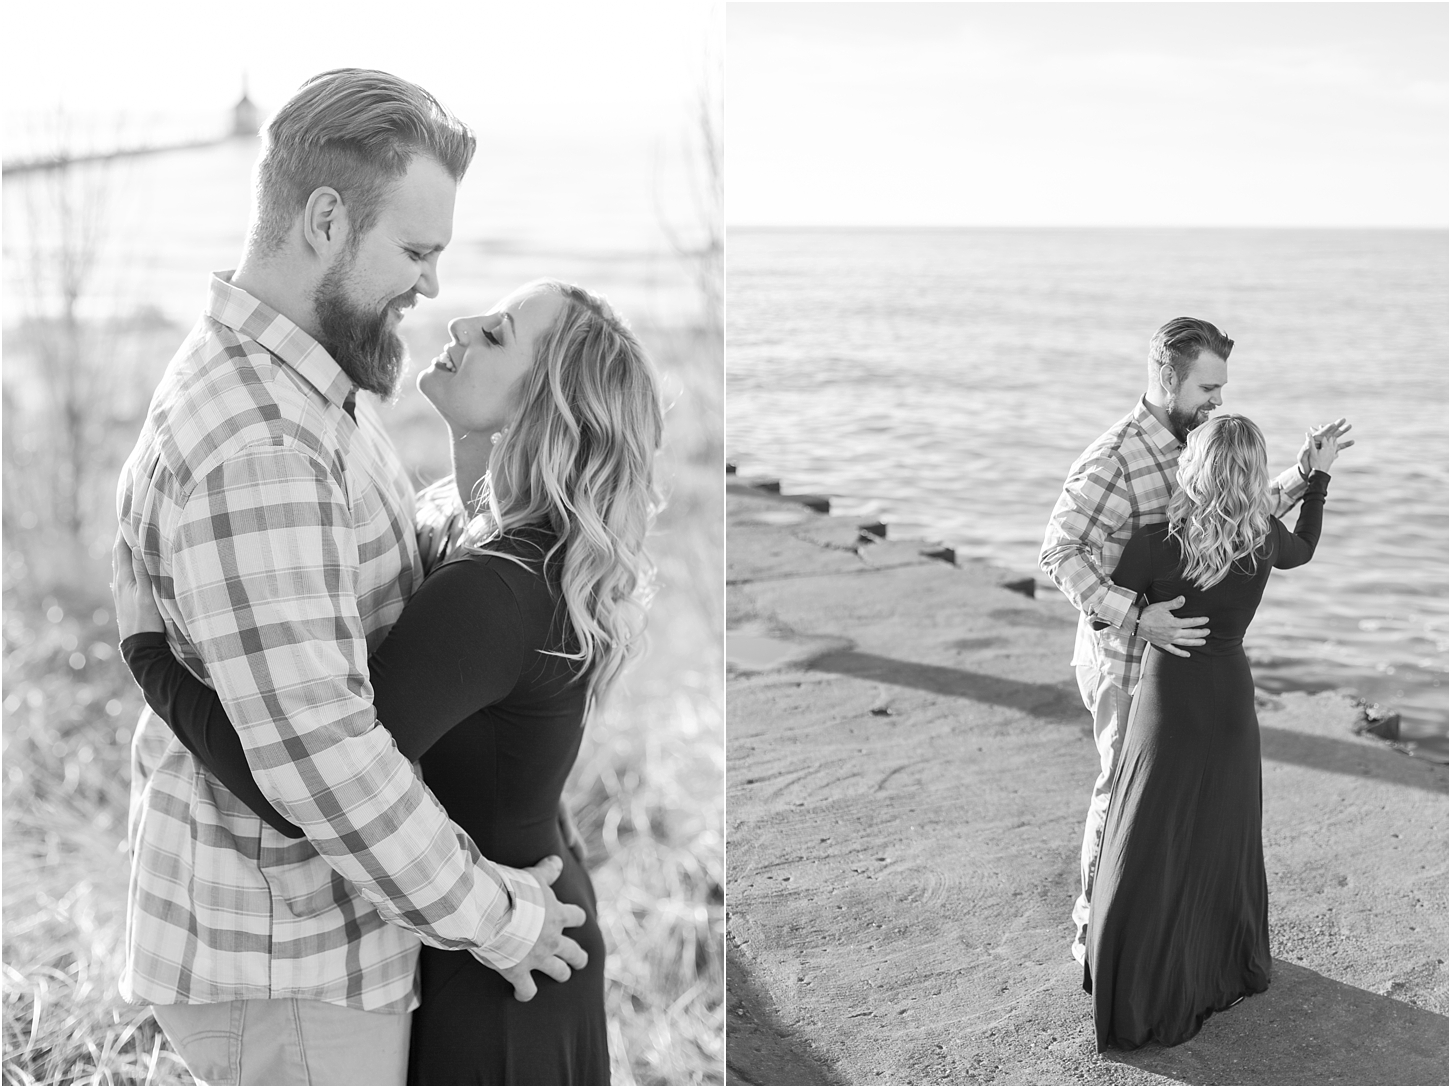 romantic-sunset-beach-engagement-photos-at-silver-beach-in-saint-joseph-mi-by-courtney-carolyn-photography_0009.jpg